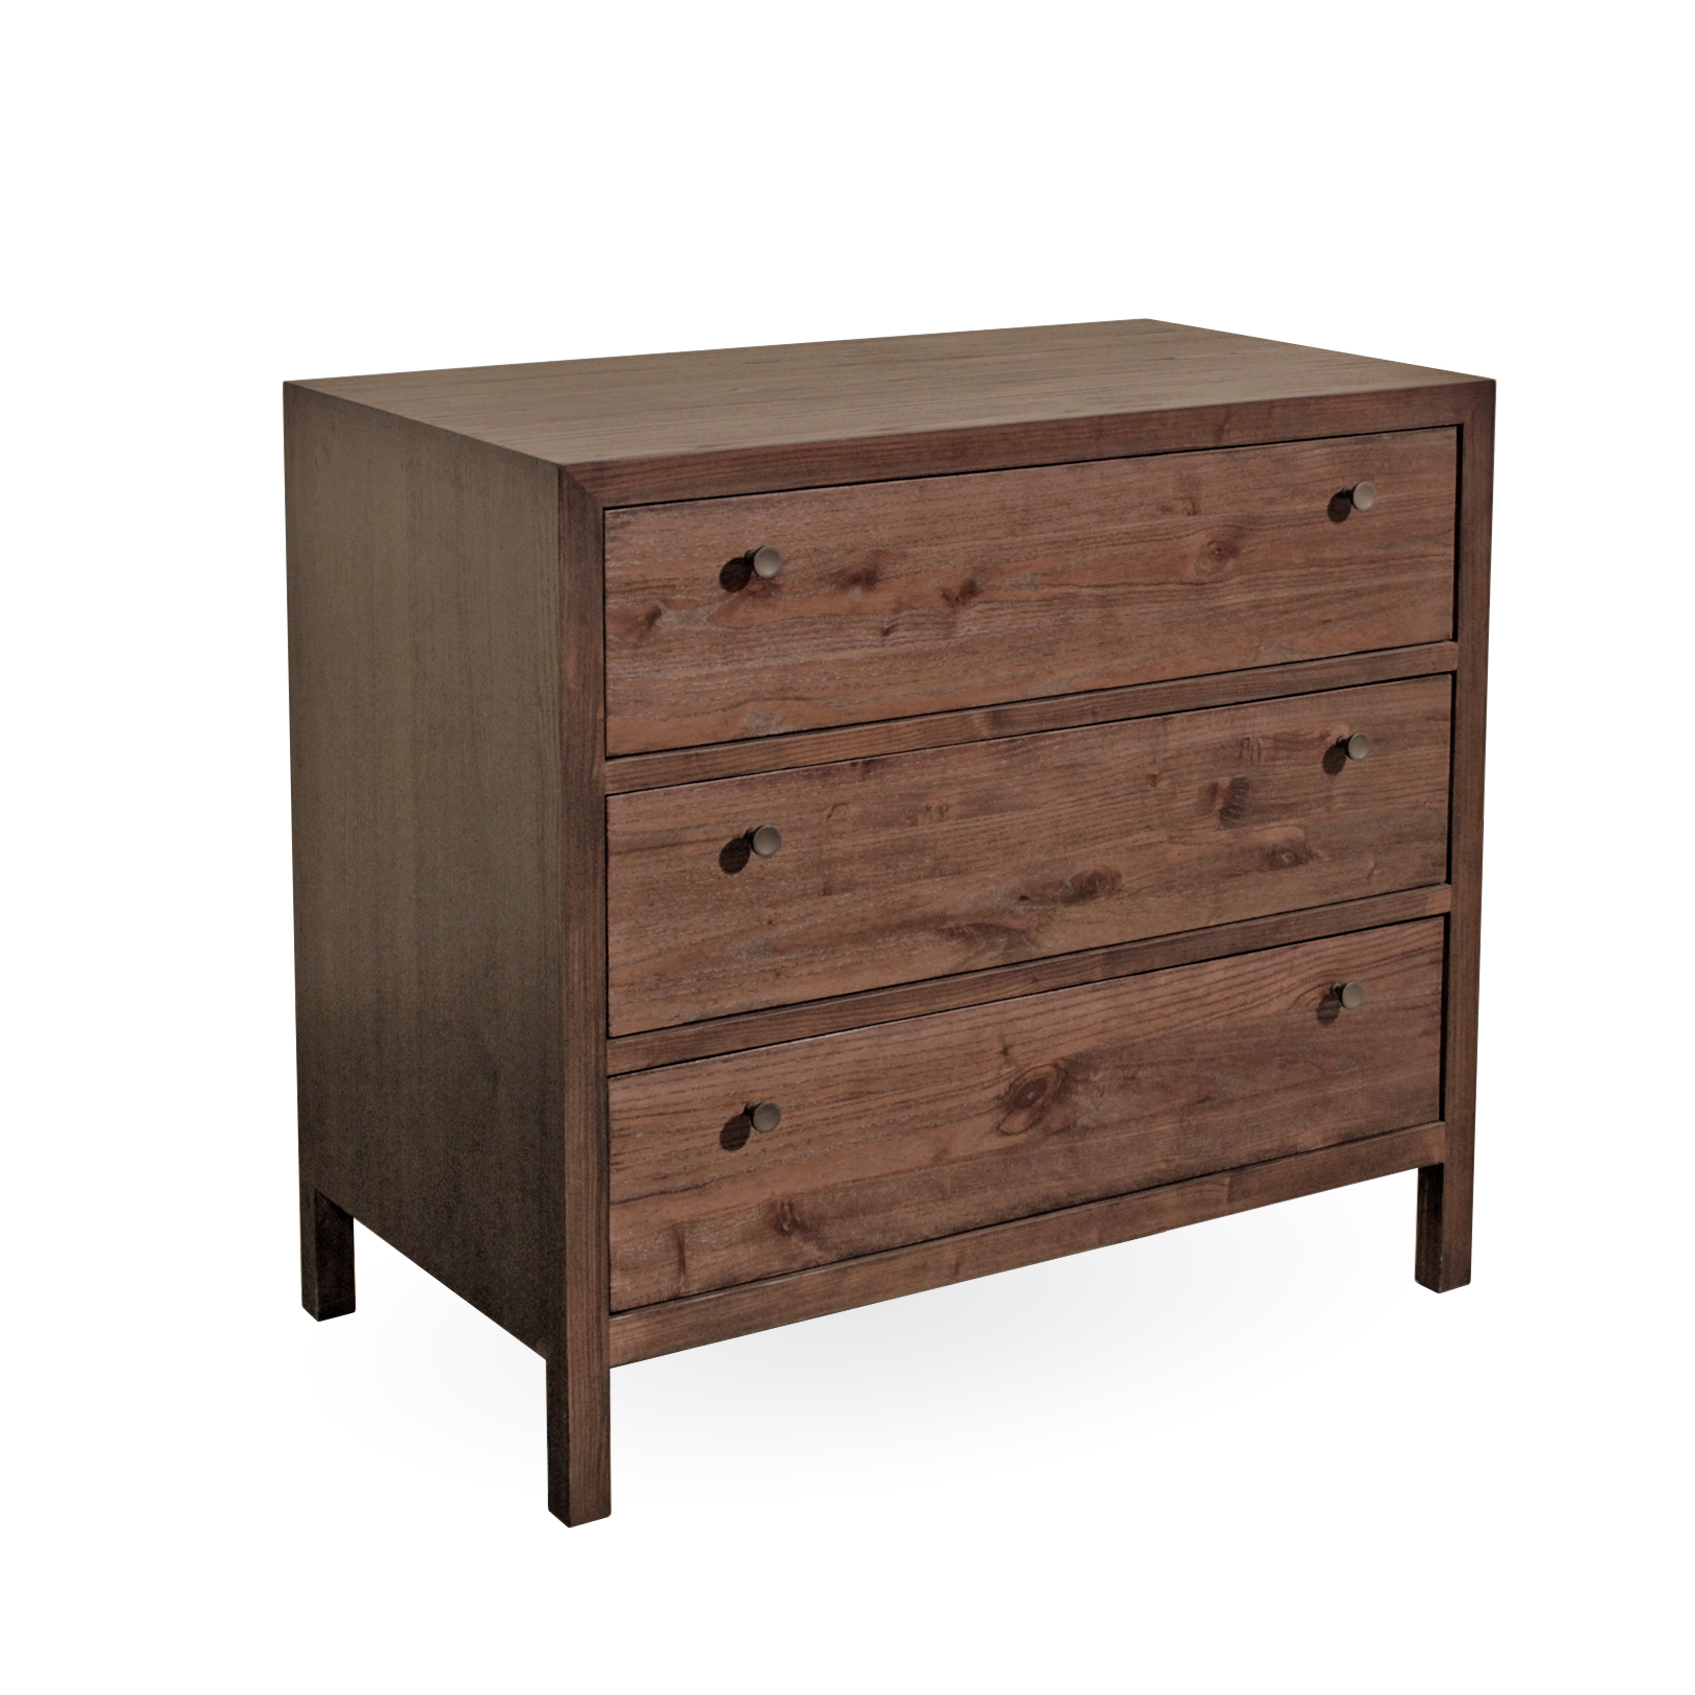 "Maria Yee Aldus 36"" 3-Drawer Elm Chest"